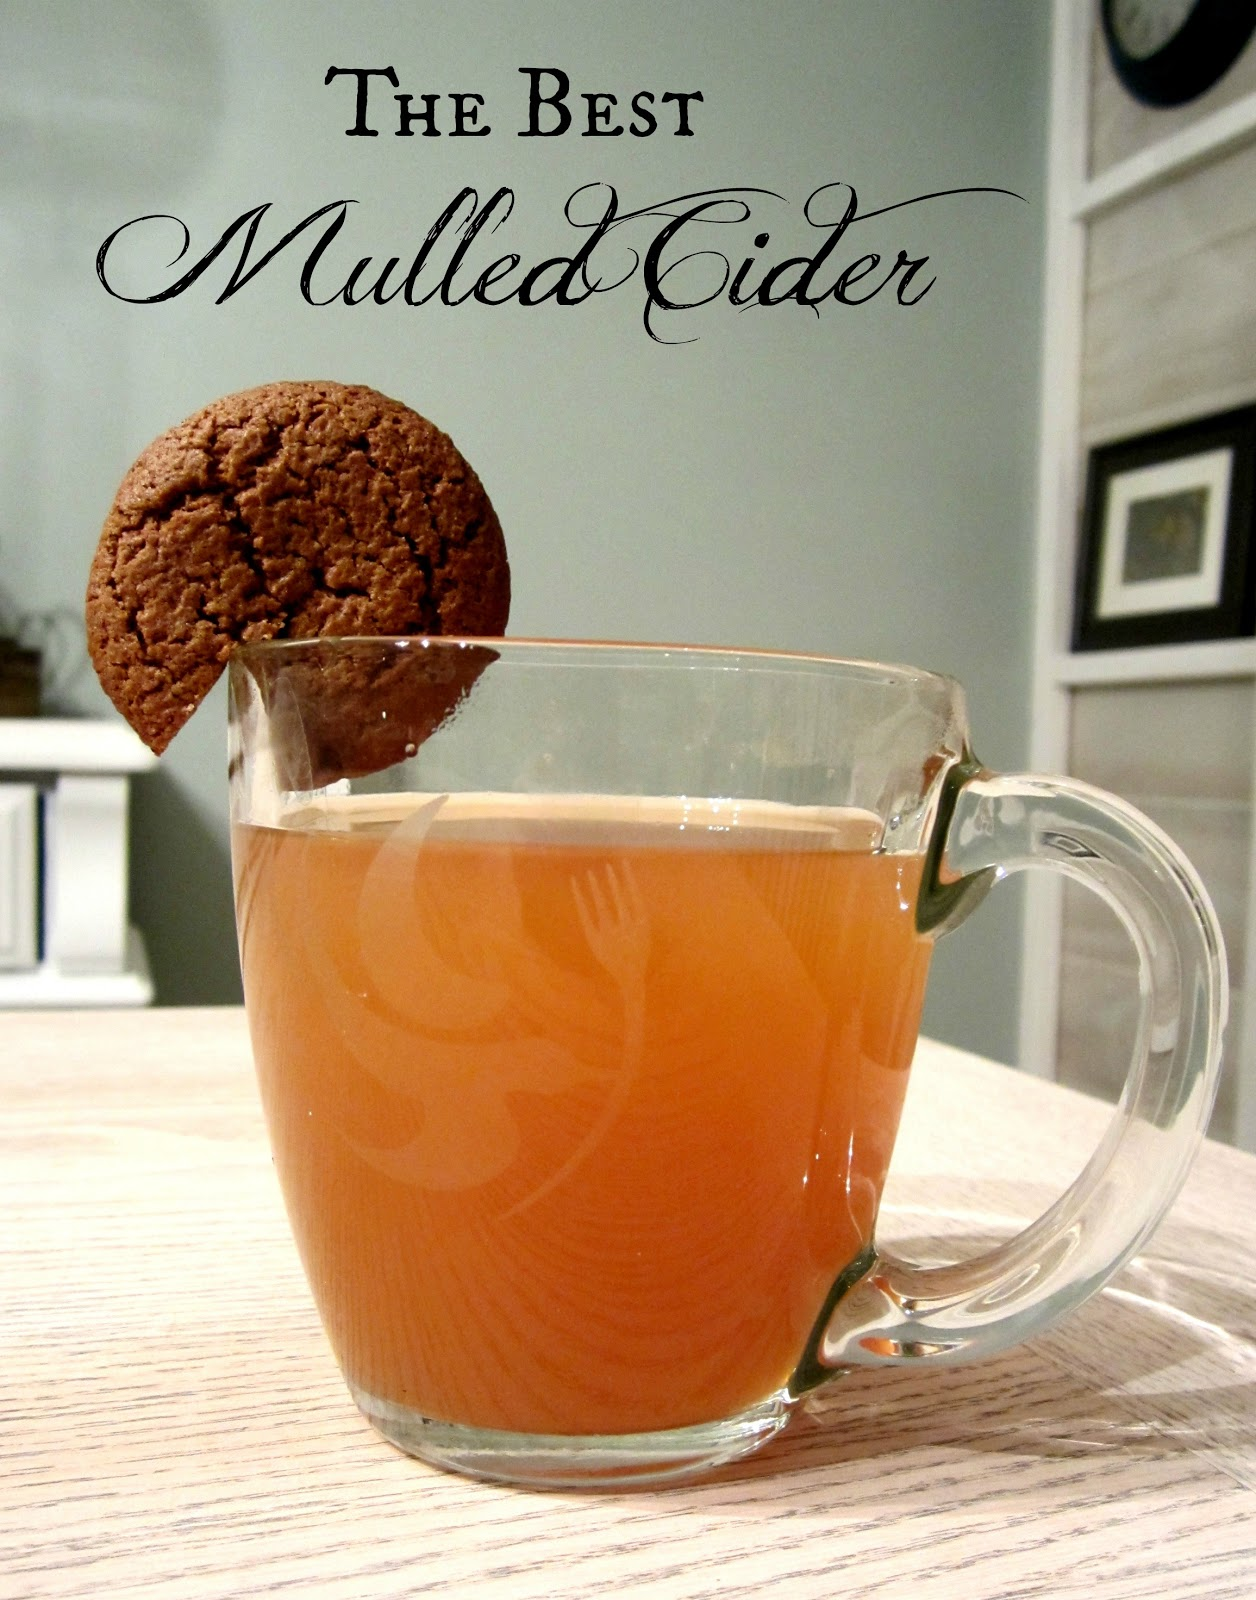 The BEST Mulled Cider - East Coast Creative Blog